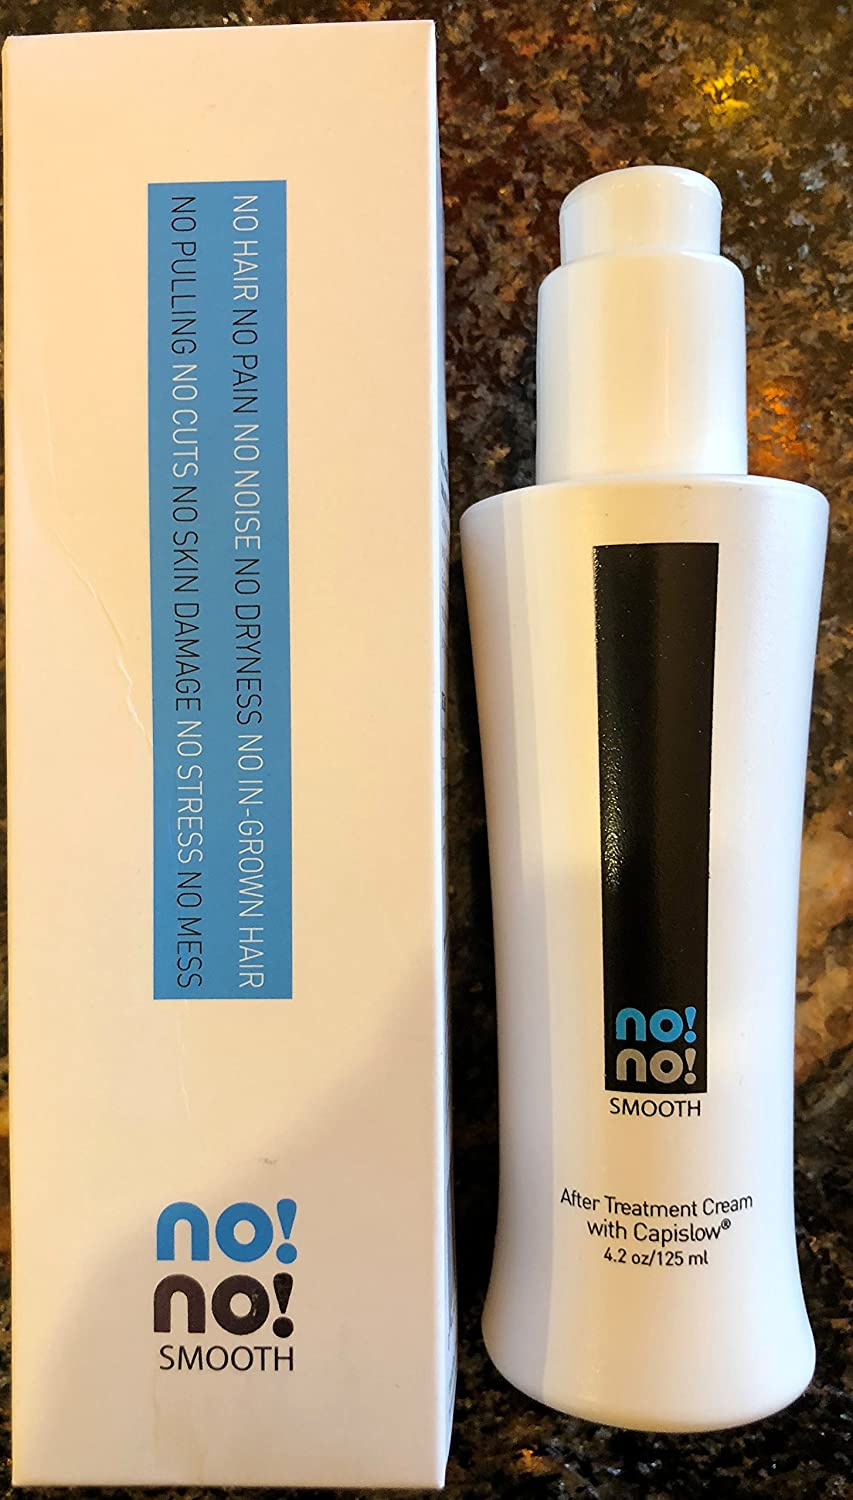 Amazon.com : NO!NO! Smooth After Treatment Cream with Capislow 4.2 oz. :  Bath And Shower Product Sets : Beauty